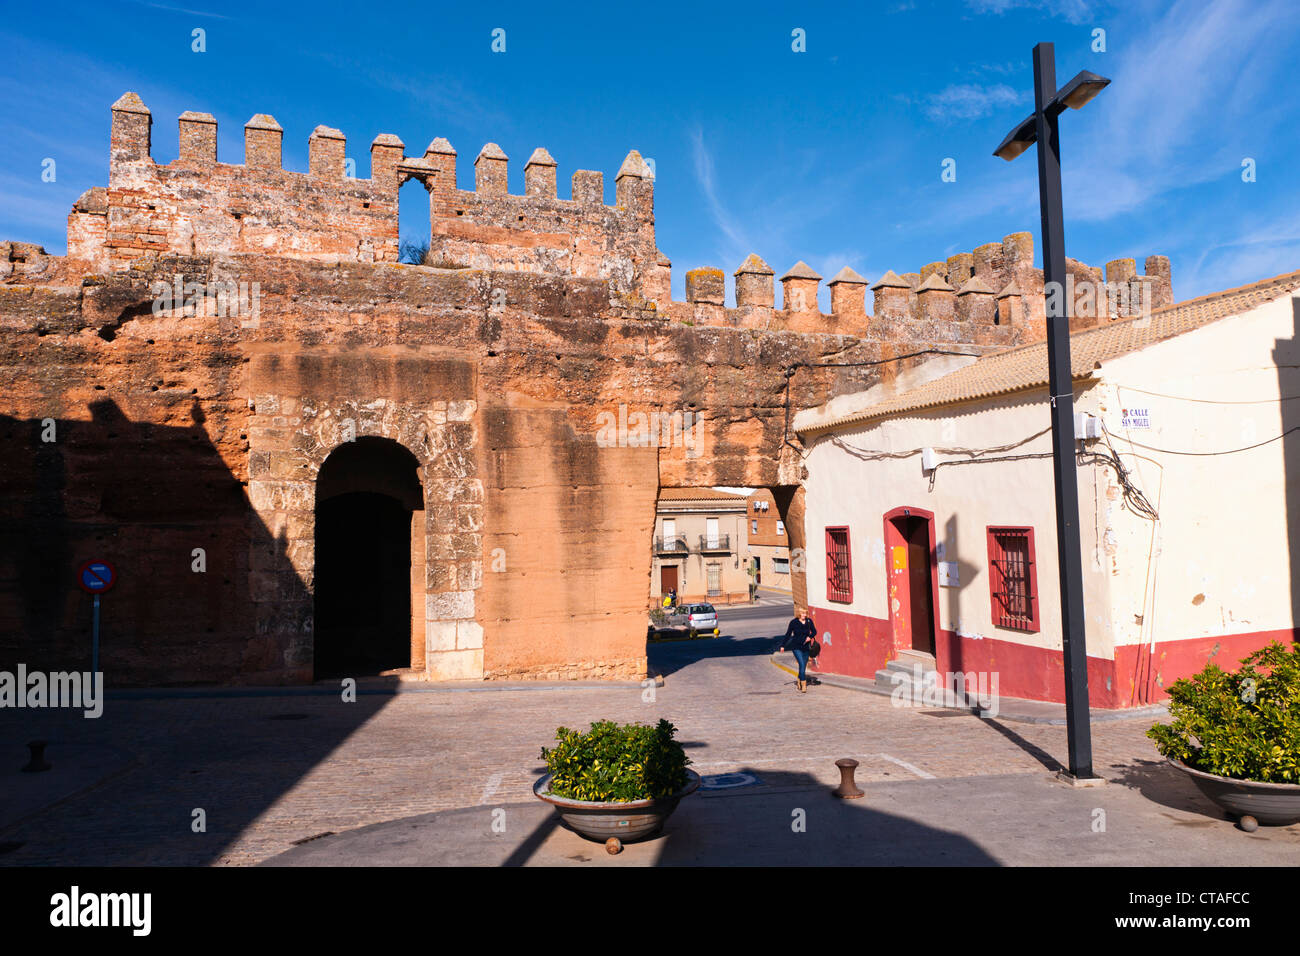 Niebla, Huelva Province, Andalusia, southern Spain. Gate through the old walls. - Stock Image